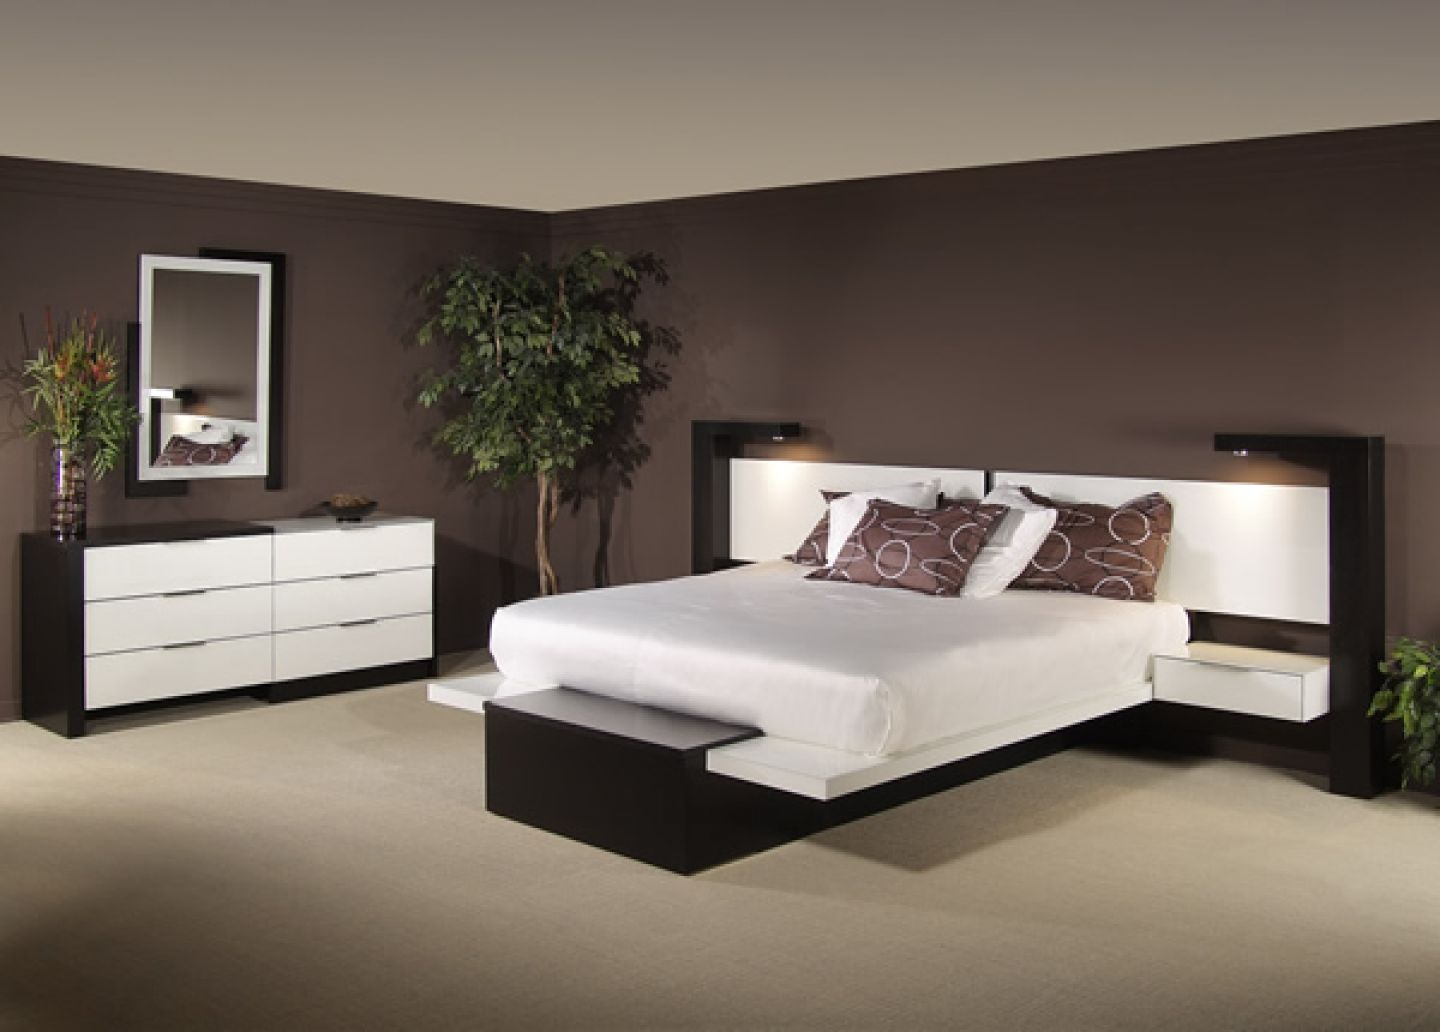 bedrooms furniture design - bedroom |